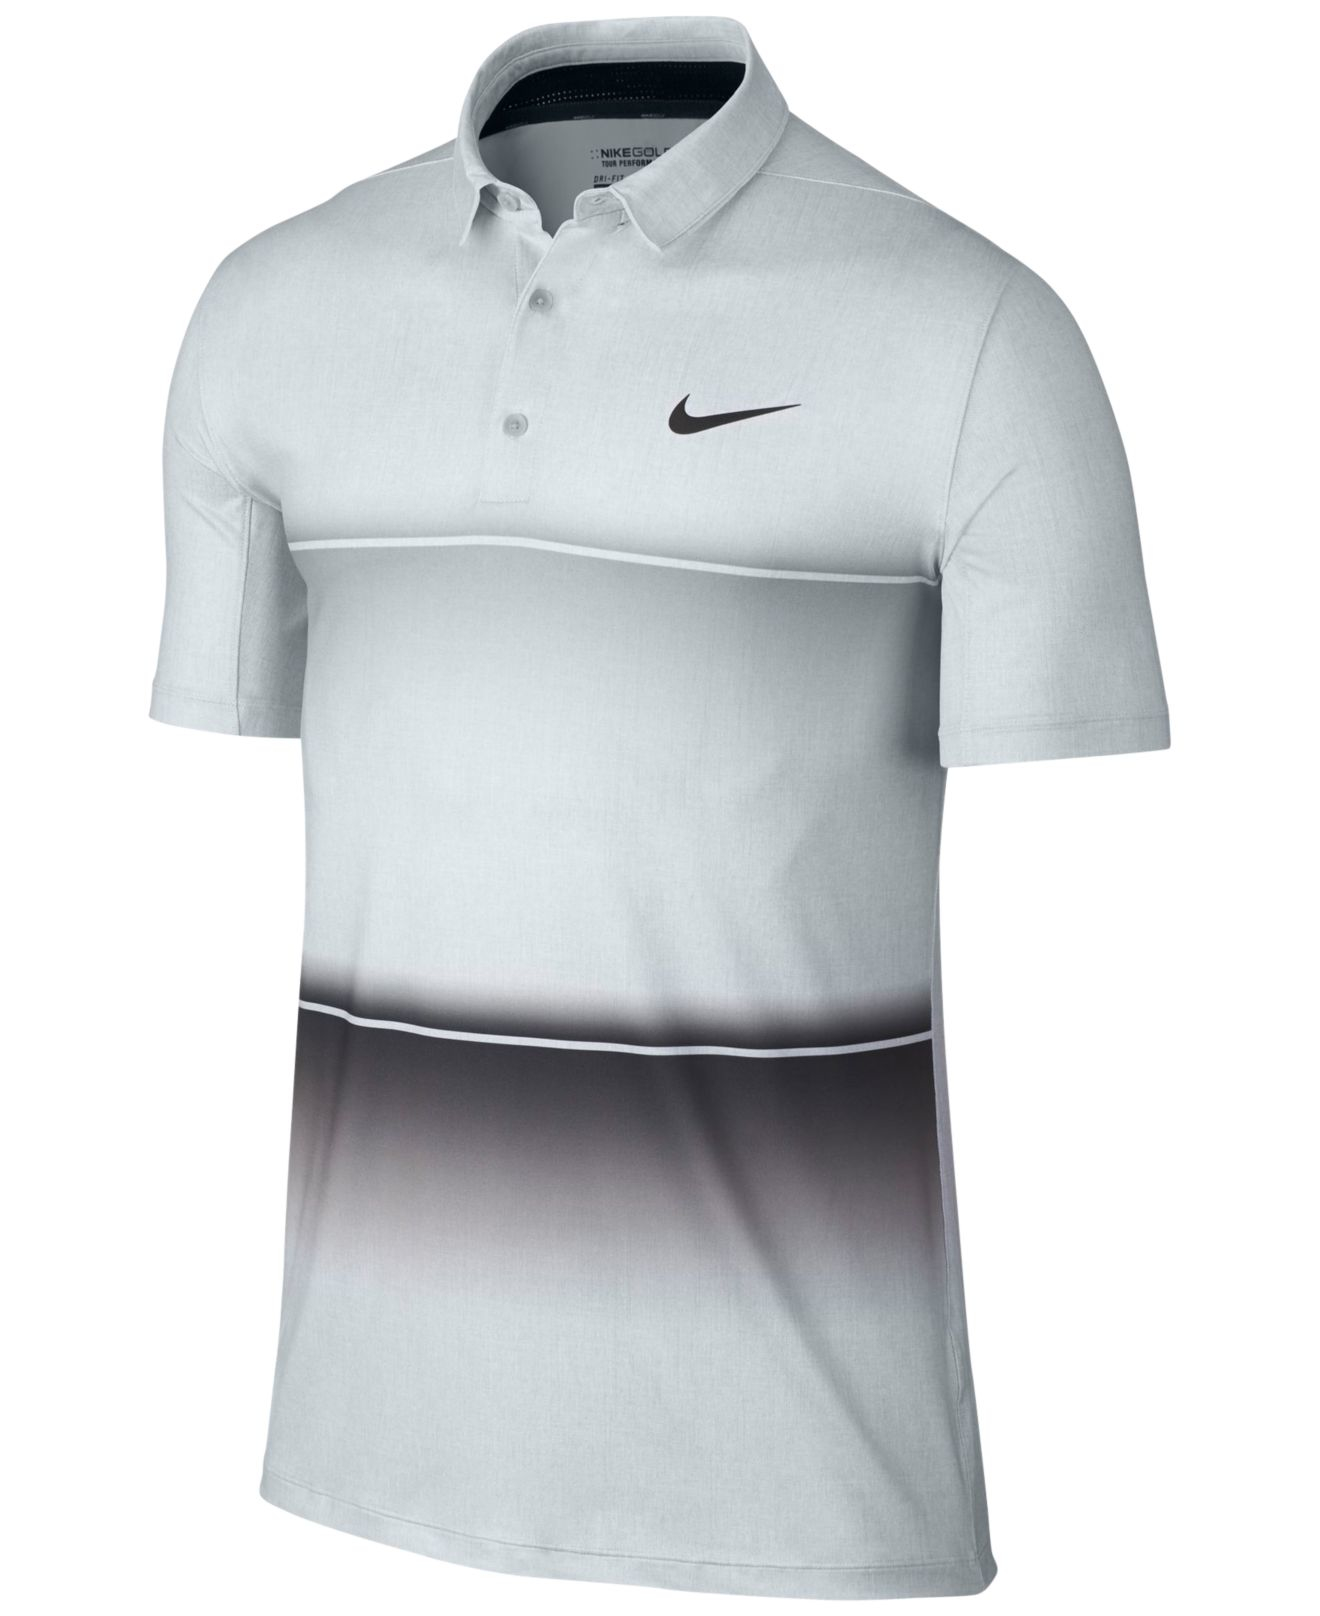 f8093c9c6 Nike Men's Mobility Stripe Dri-fit Golf Polo in Gray for Men - Lyst